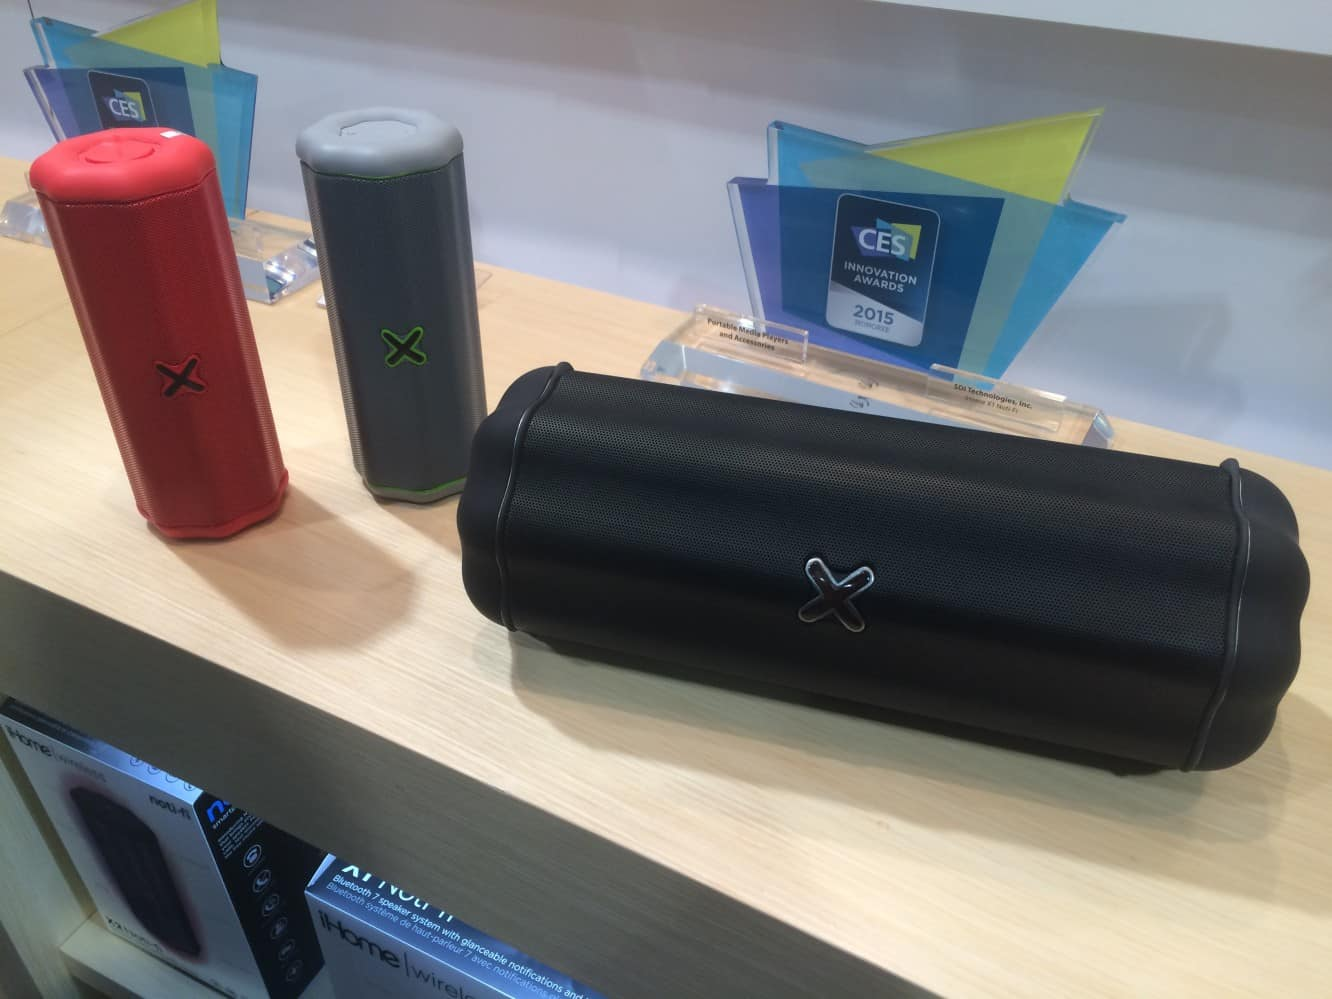 CES 2015: Day One